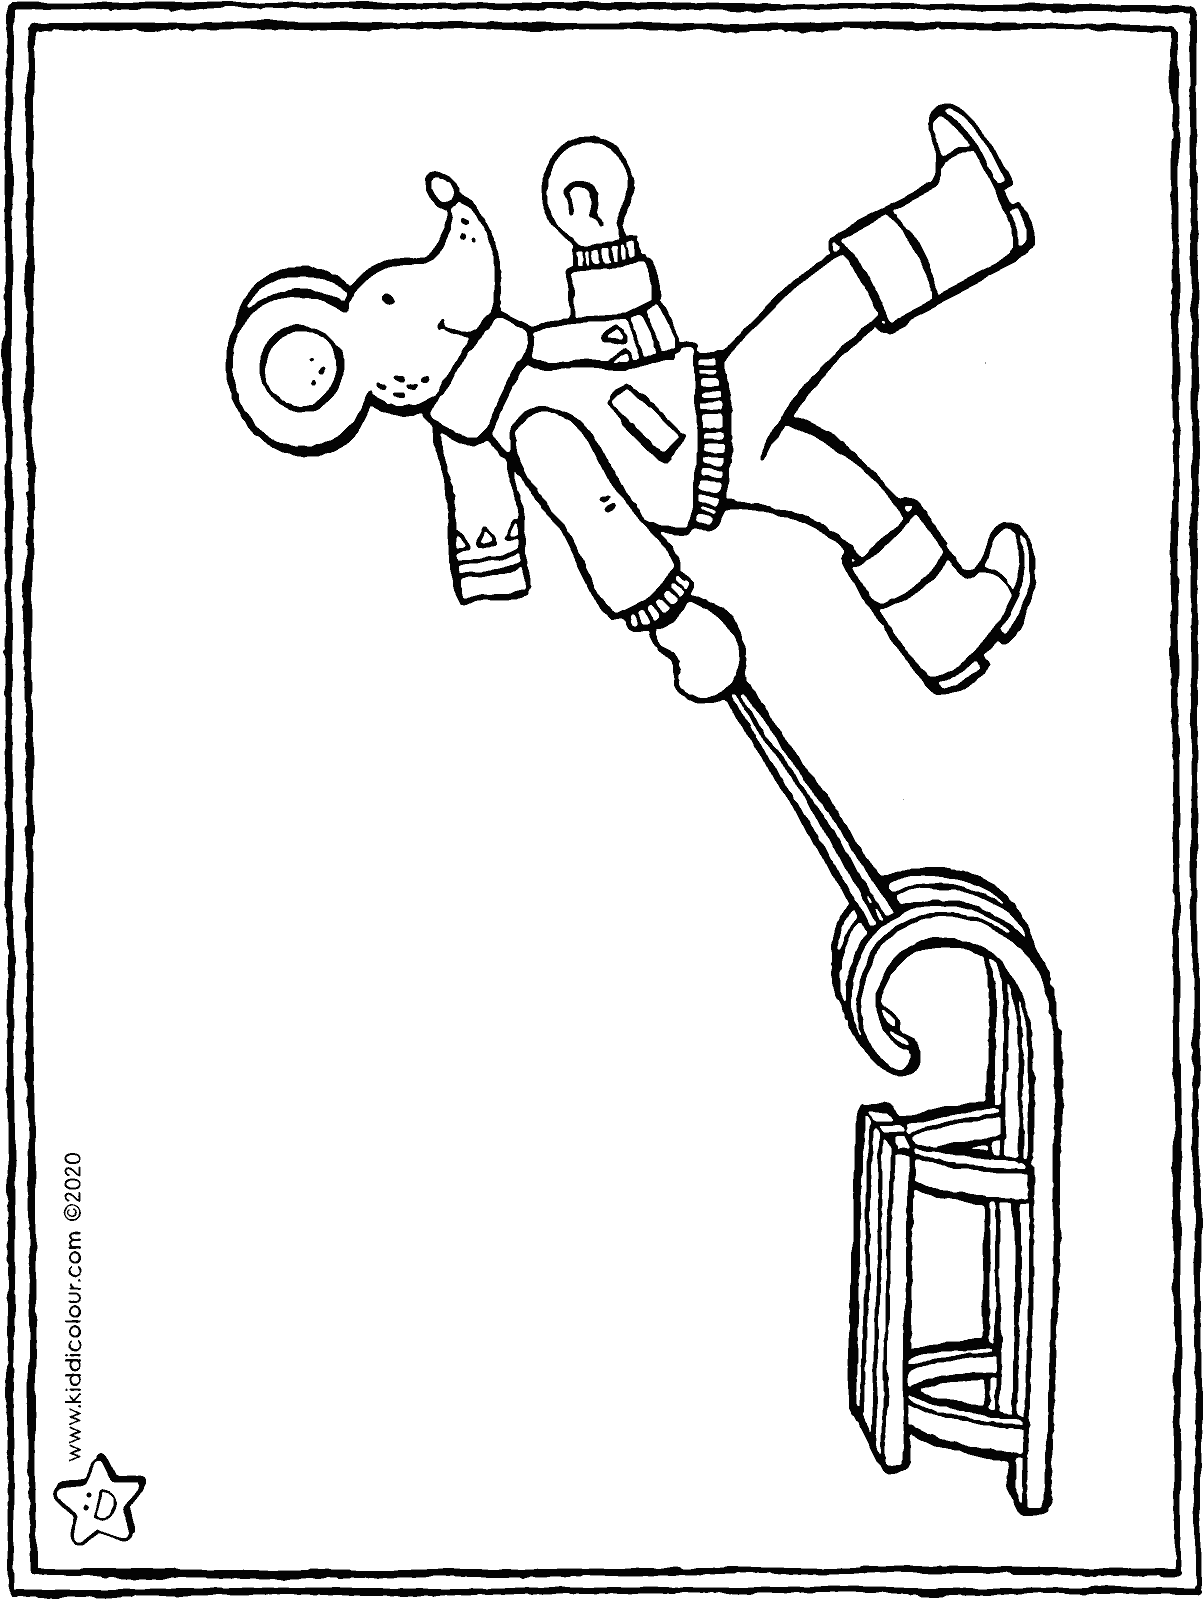 Thomas and the sledge colouring page drawing picture 01H